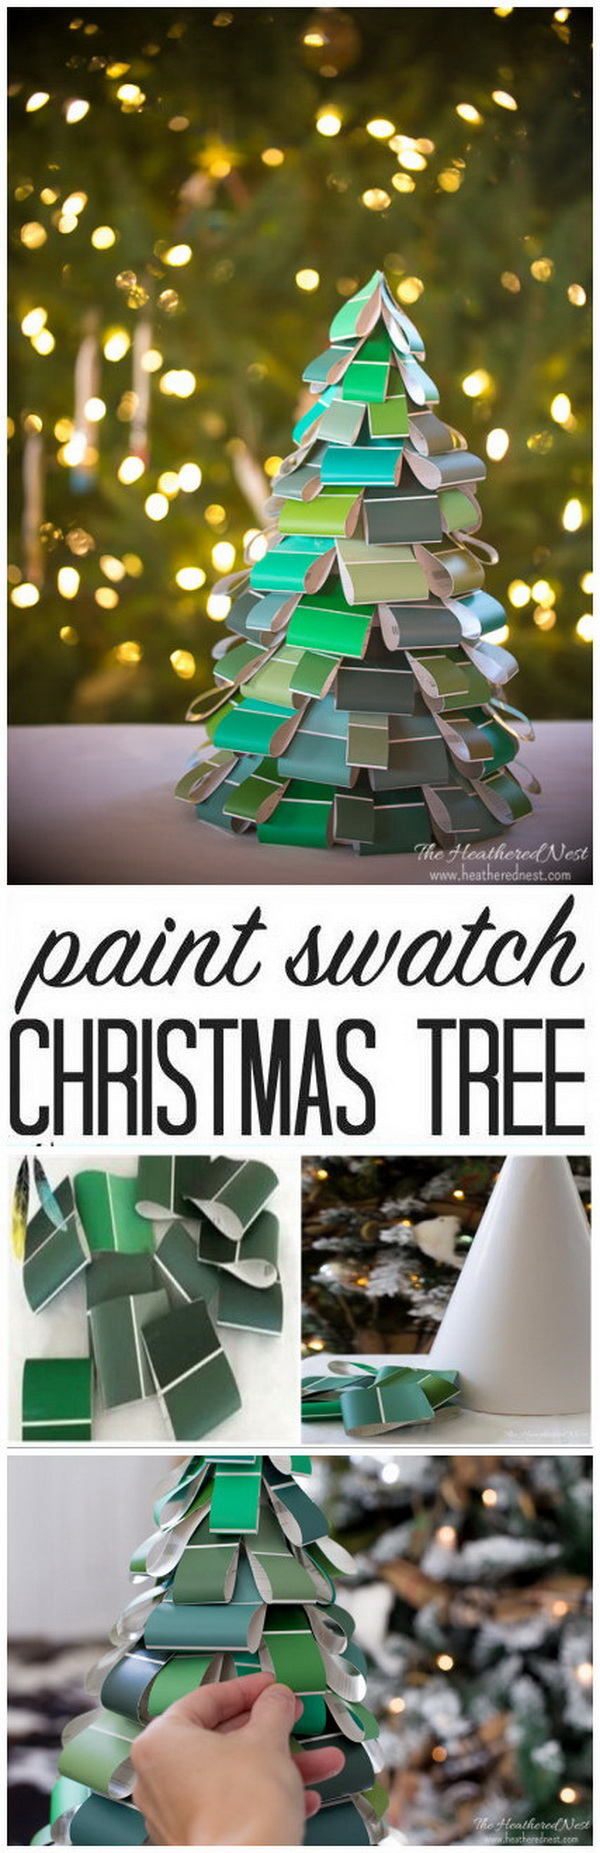 120 Christmas Decorations From The Dollar Store